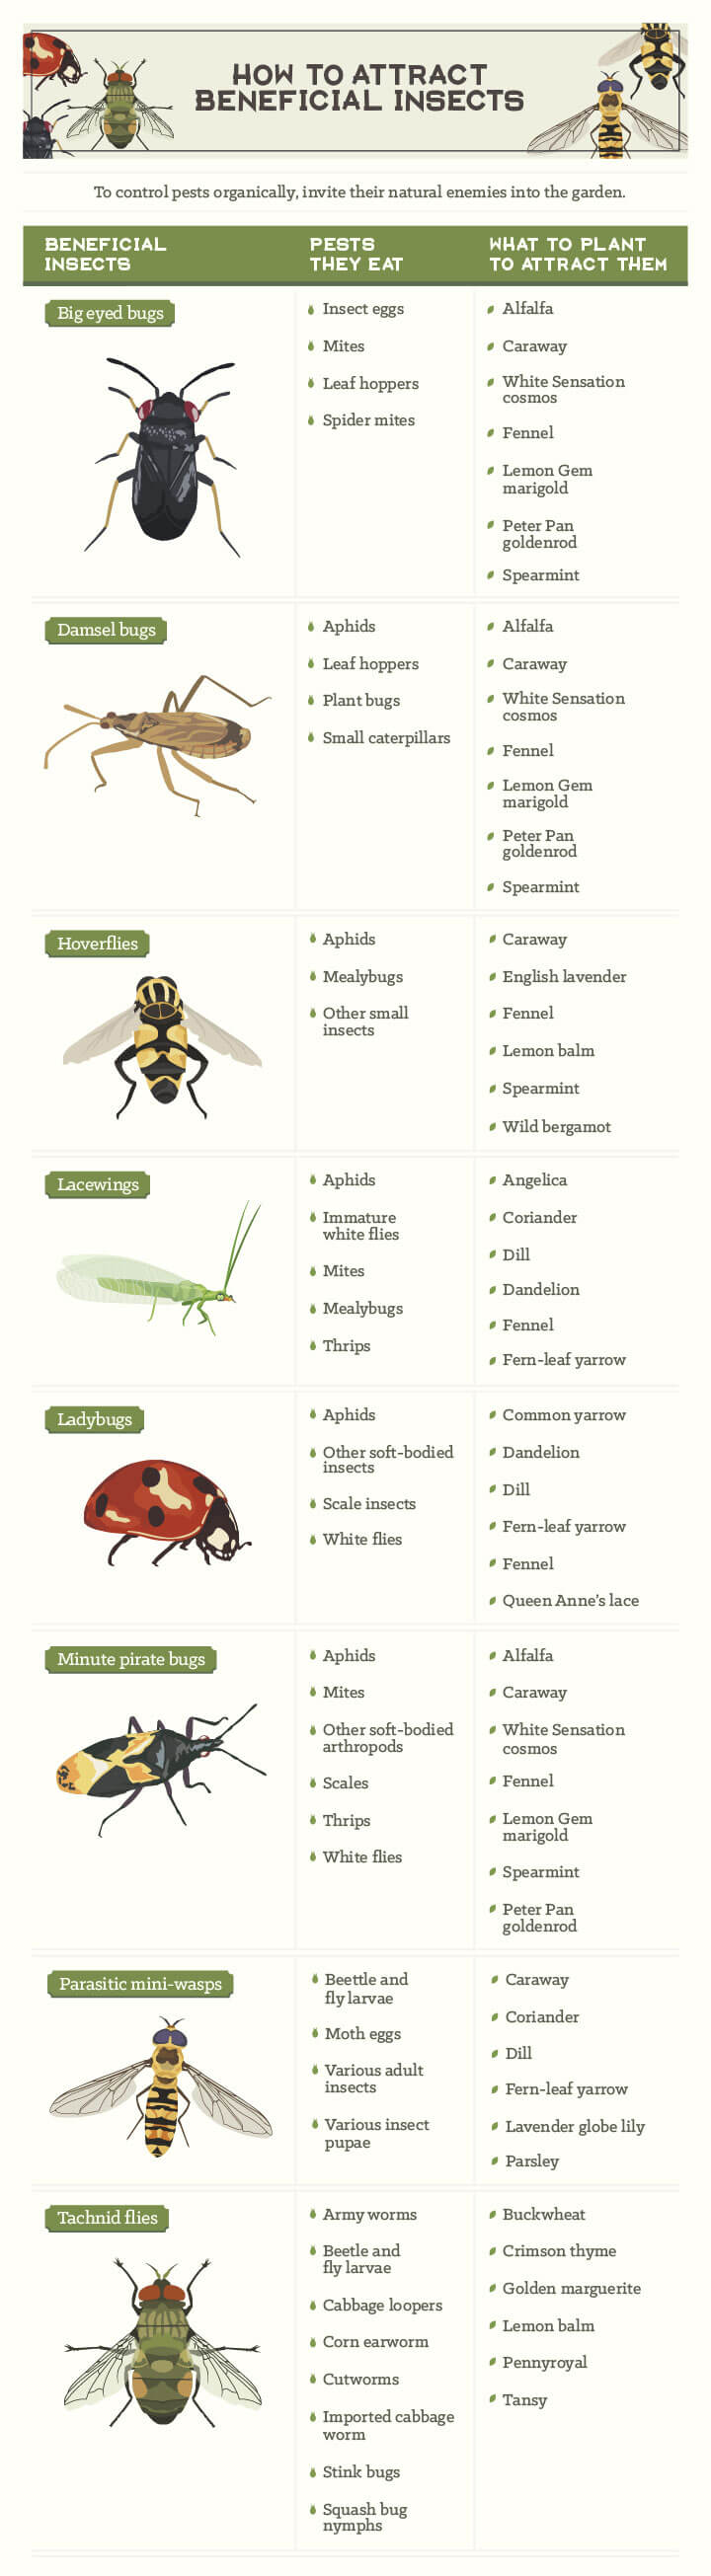 How to Attract Beneficial Insects Infographic